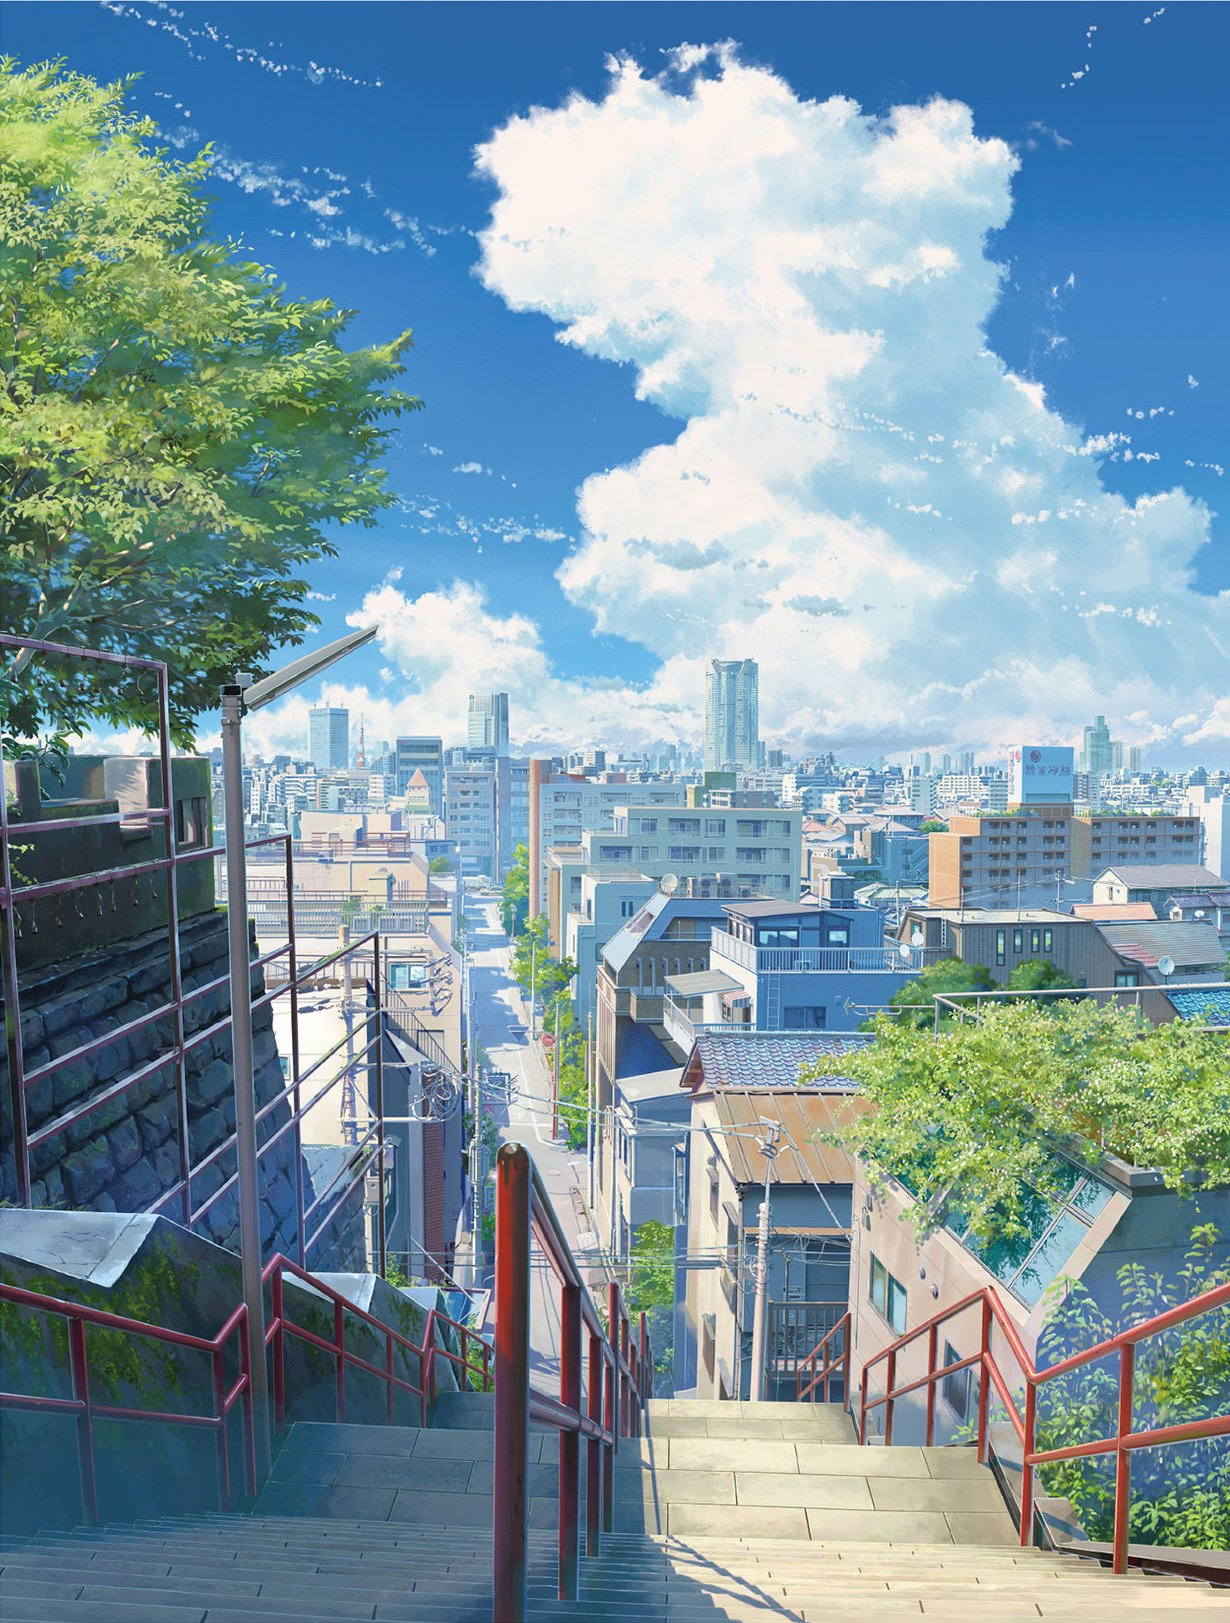 Anime Skyline : anime, skyline, Stair, Anime,